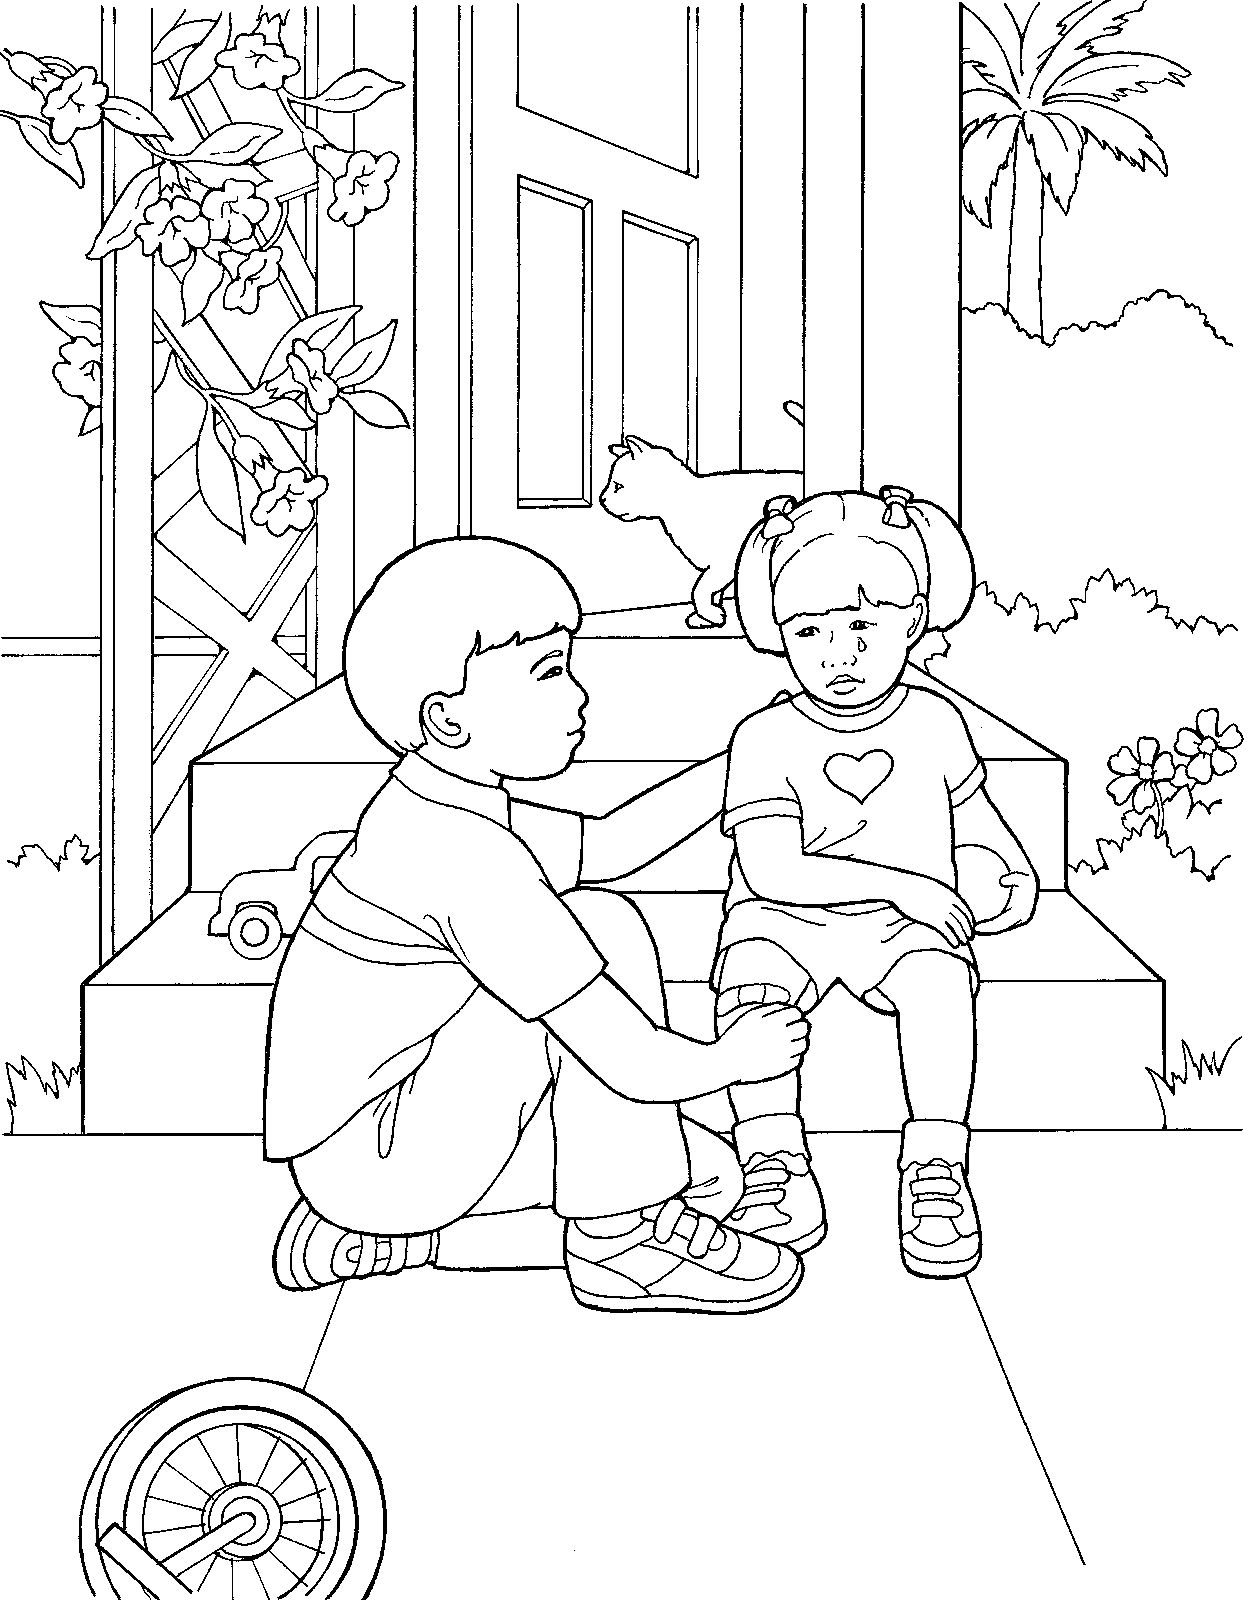 Primary Coloring Page From Lds A Little Boy Comforts